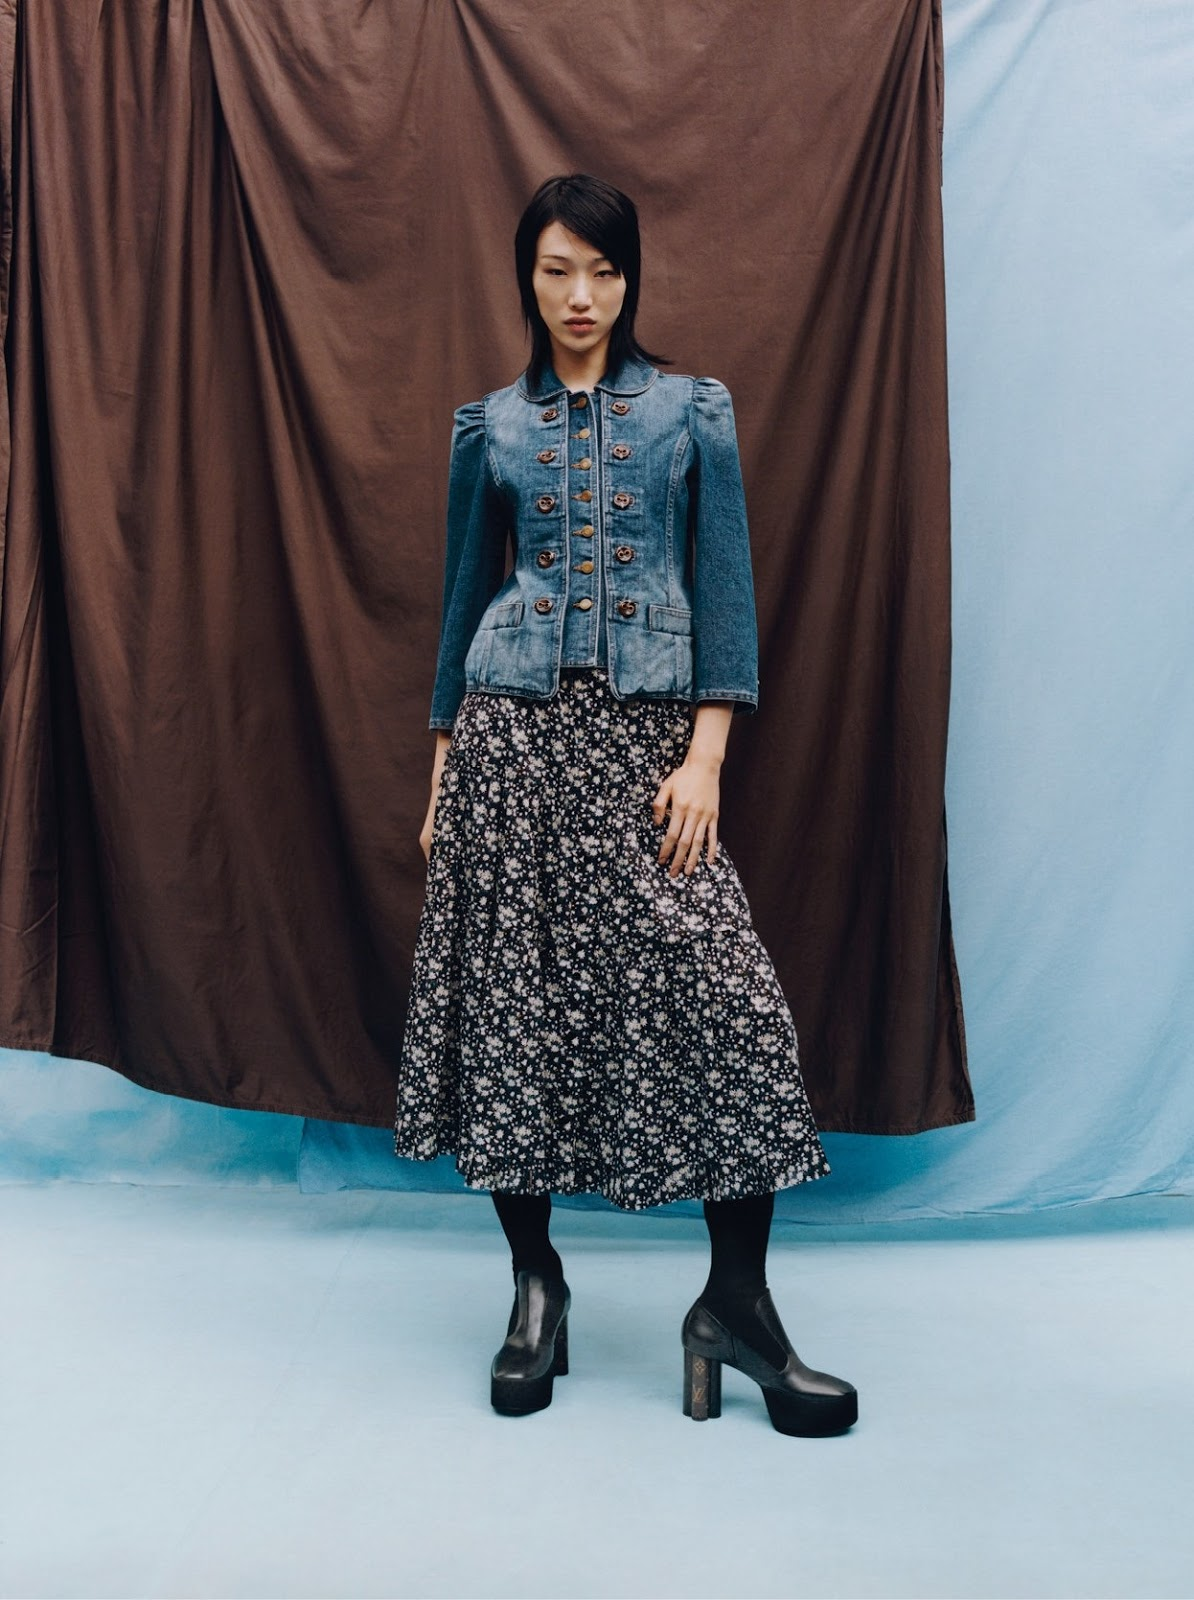 Sora Choi - The Marc Jacobs jacket and skirt. Louis Vuitton boots